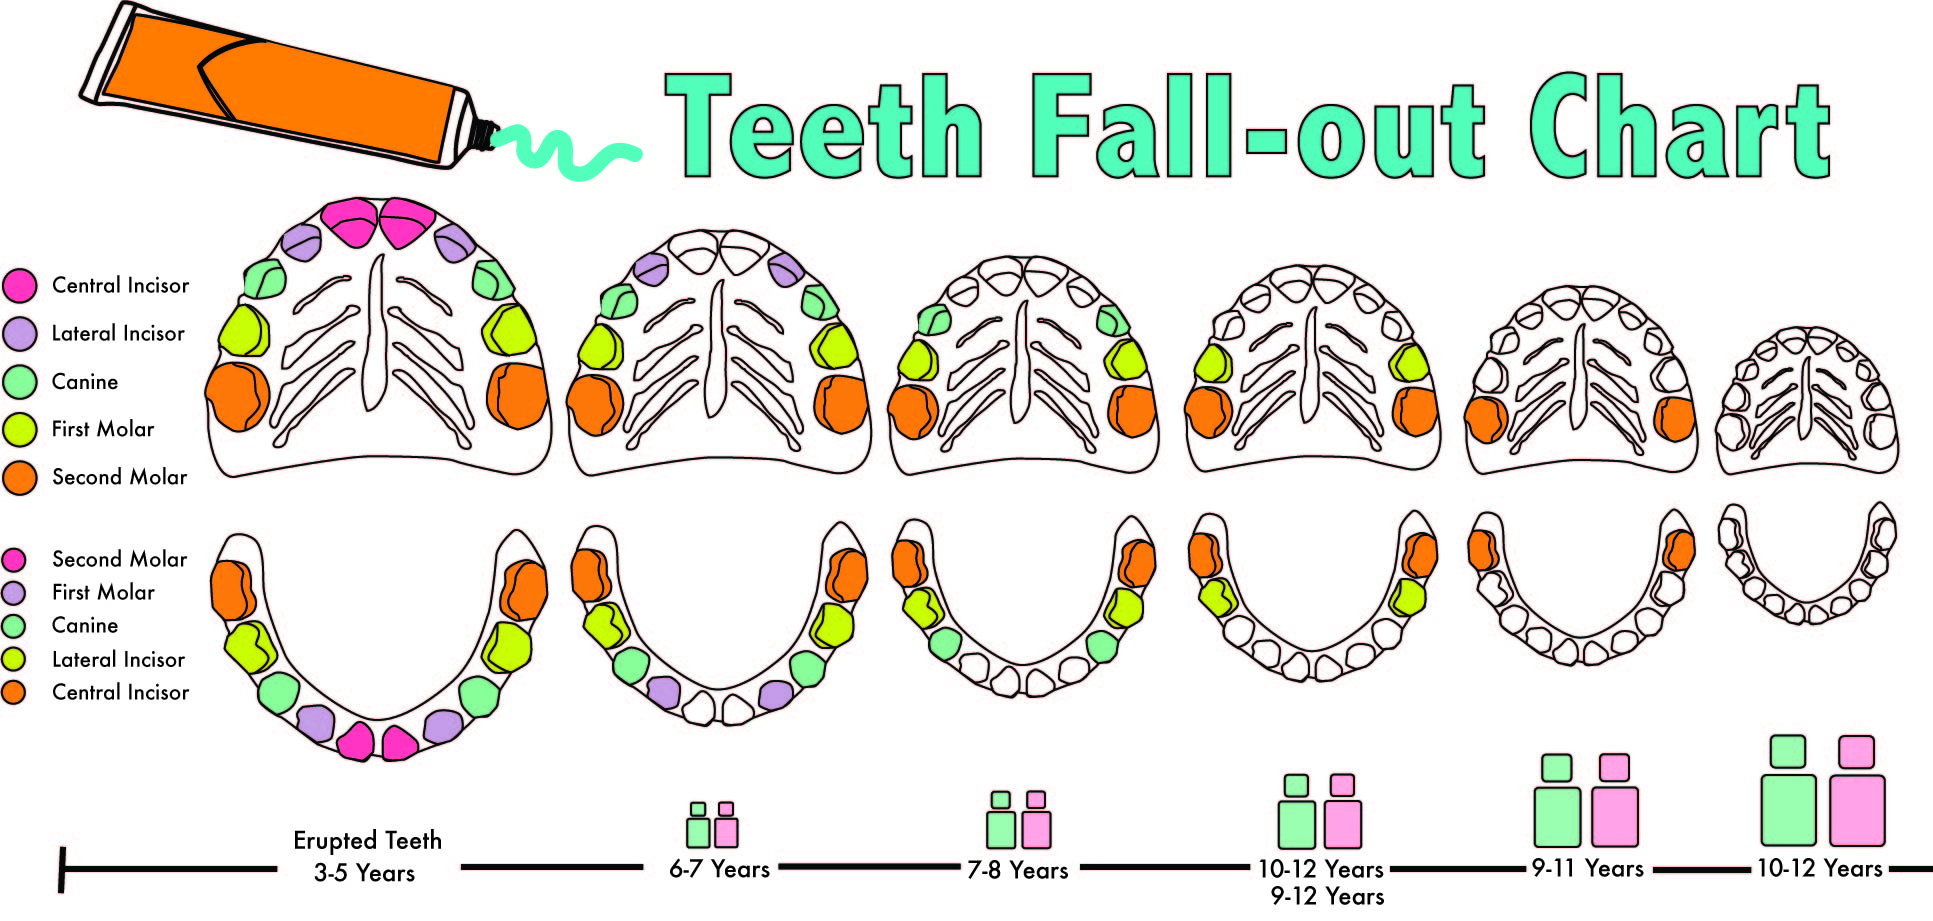 When Do Baby Teeth Fall Out Diagram | amulette